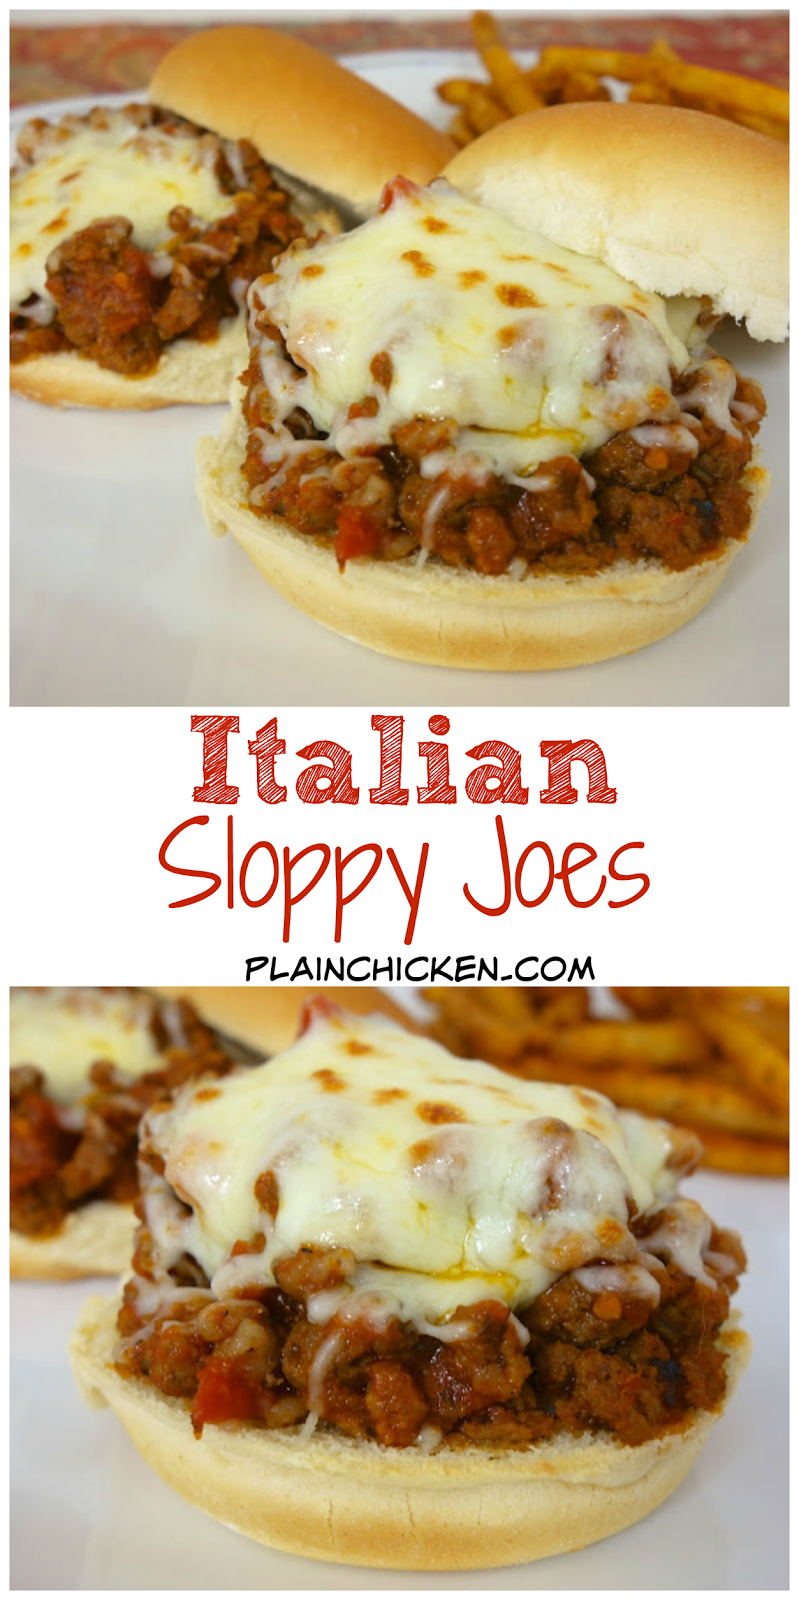 Italian Sloppy Joes recipe - combination of hamburger and sausage simmered in spaghetti sauce - top with mozzarella cheese. My favorite sloppy joe recipes! Ready in 15 minutes!